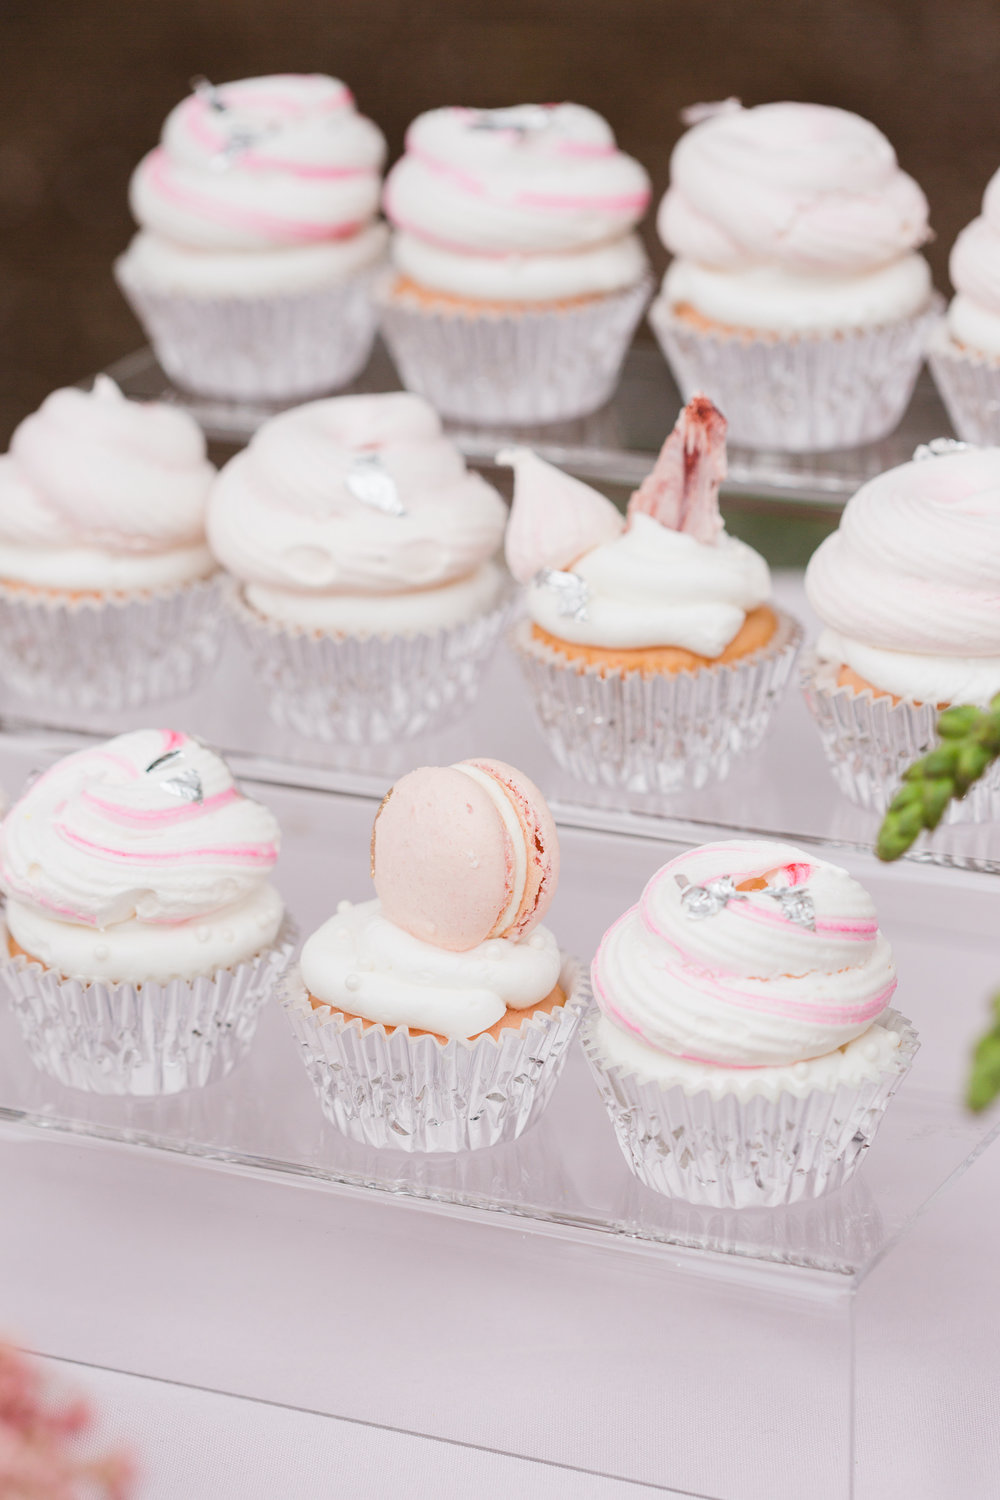 Cakes and Sweets-0126.jpg